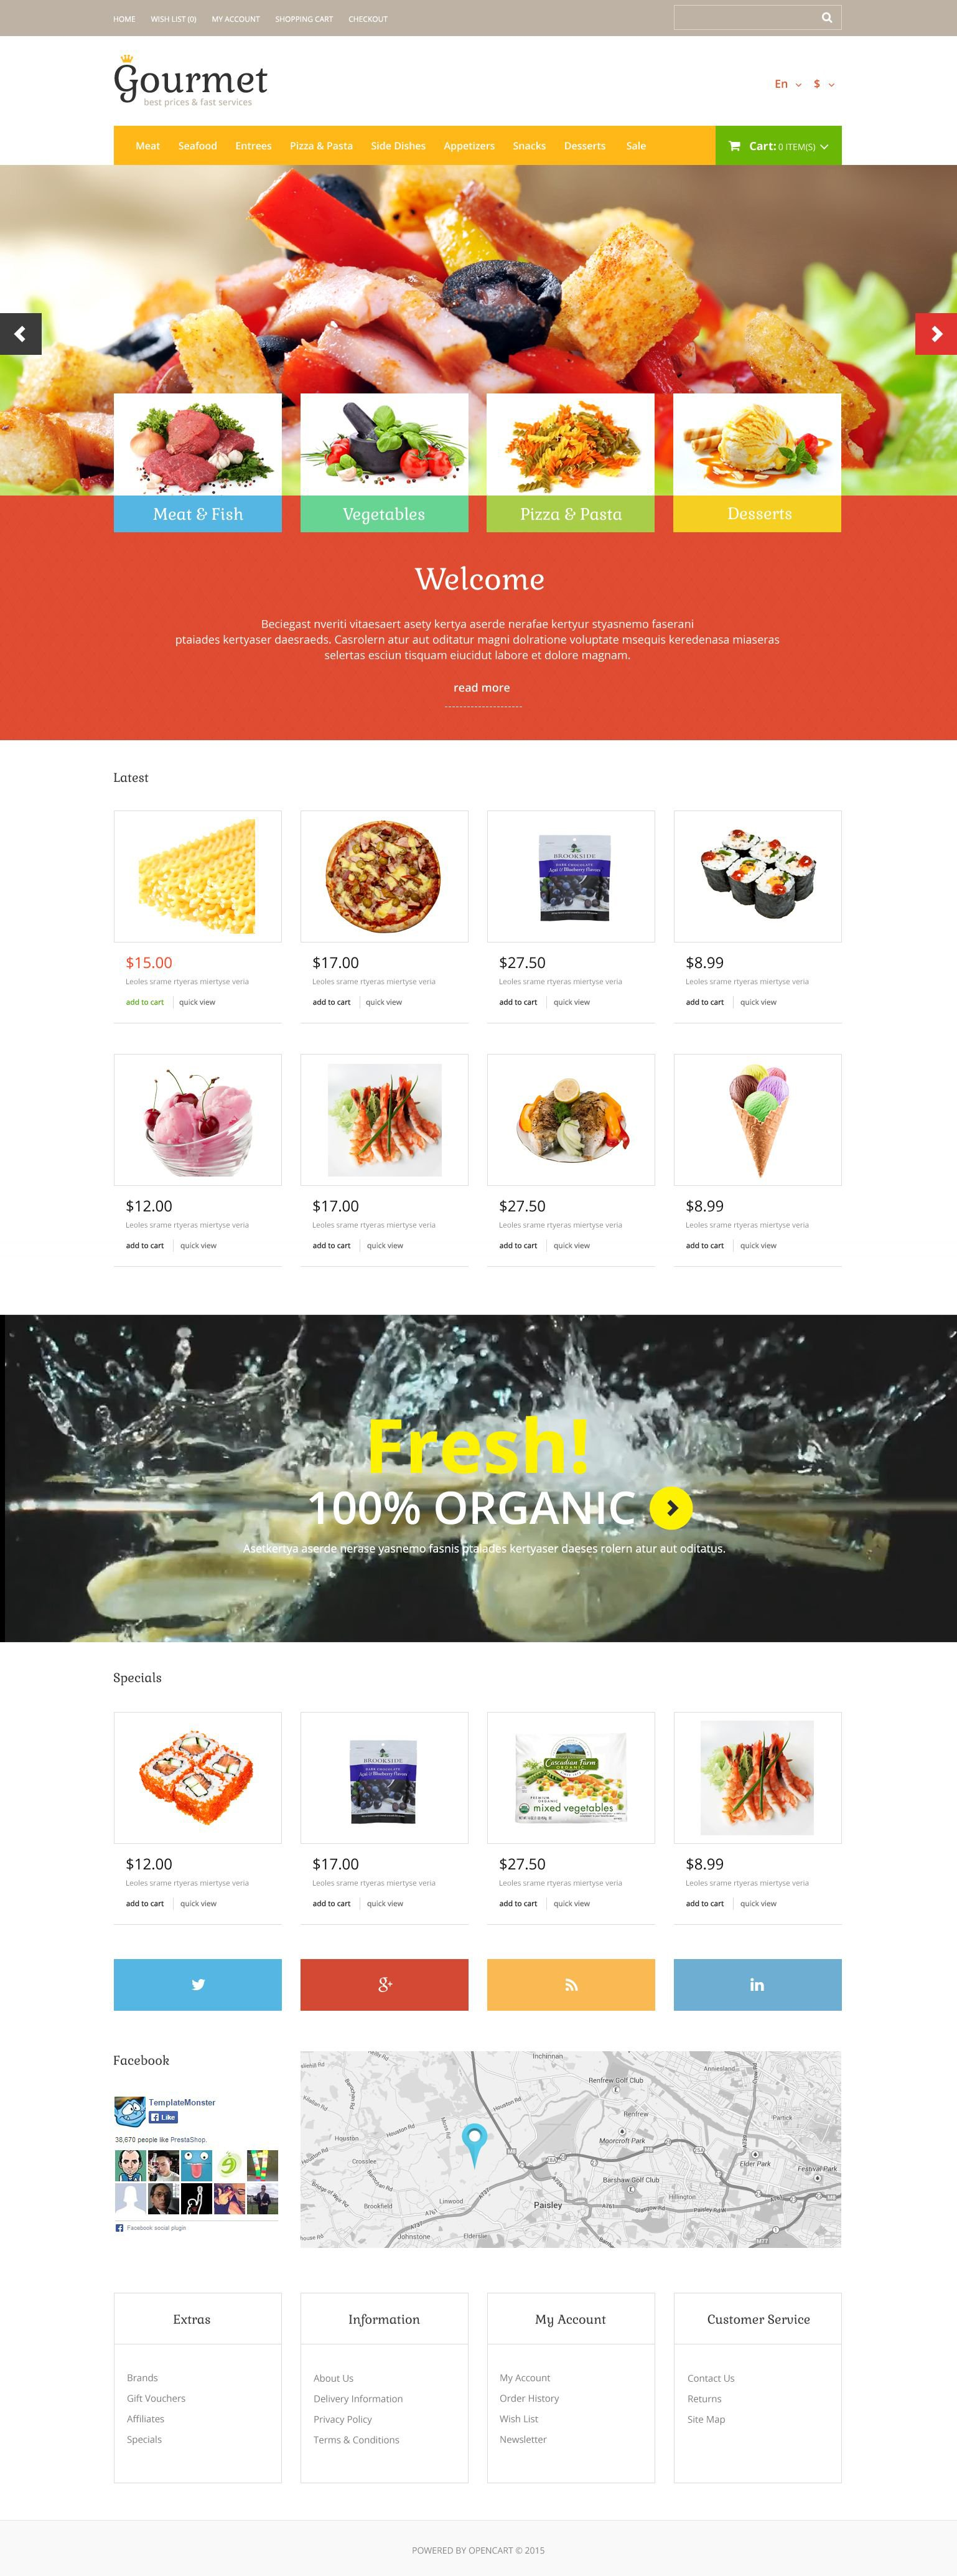 The Gourmet Food Online Store OpenCart Design 53122, one of the best OpenCart templates of its kind (food & drink, most popular), also known as gourmet food online store OpenCart template, supermarket OpenCart template, fruit OpenCart template, natural company OpenCart template, manufacturer OpenCart template, manufacture OpenCart template, production OpenCart template, fresh OpenCart template, beverage OpenCart template, PSD template OpenCart template, wine OpenCart template, production OpenCart template, cake OpenCart template, cakes OpenCart template, food OpenCart template, feast OpenCart template, tasty OpenCart template, delicious OpenCart template, gourmet OpenCart template, vegetables OpenCart template, fruits and related with gourmet food online store, supermarket, fruit, natural company, manufacturer, manufacture, production, fresh, beverage, PSD template, wine, production, cake, cakes, food, feast, tasty, delicious, gourmet, vegetables, fruits, etc.